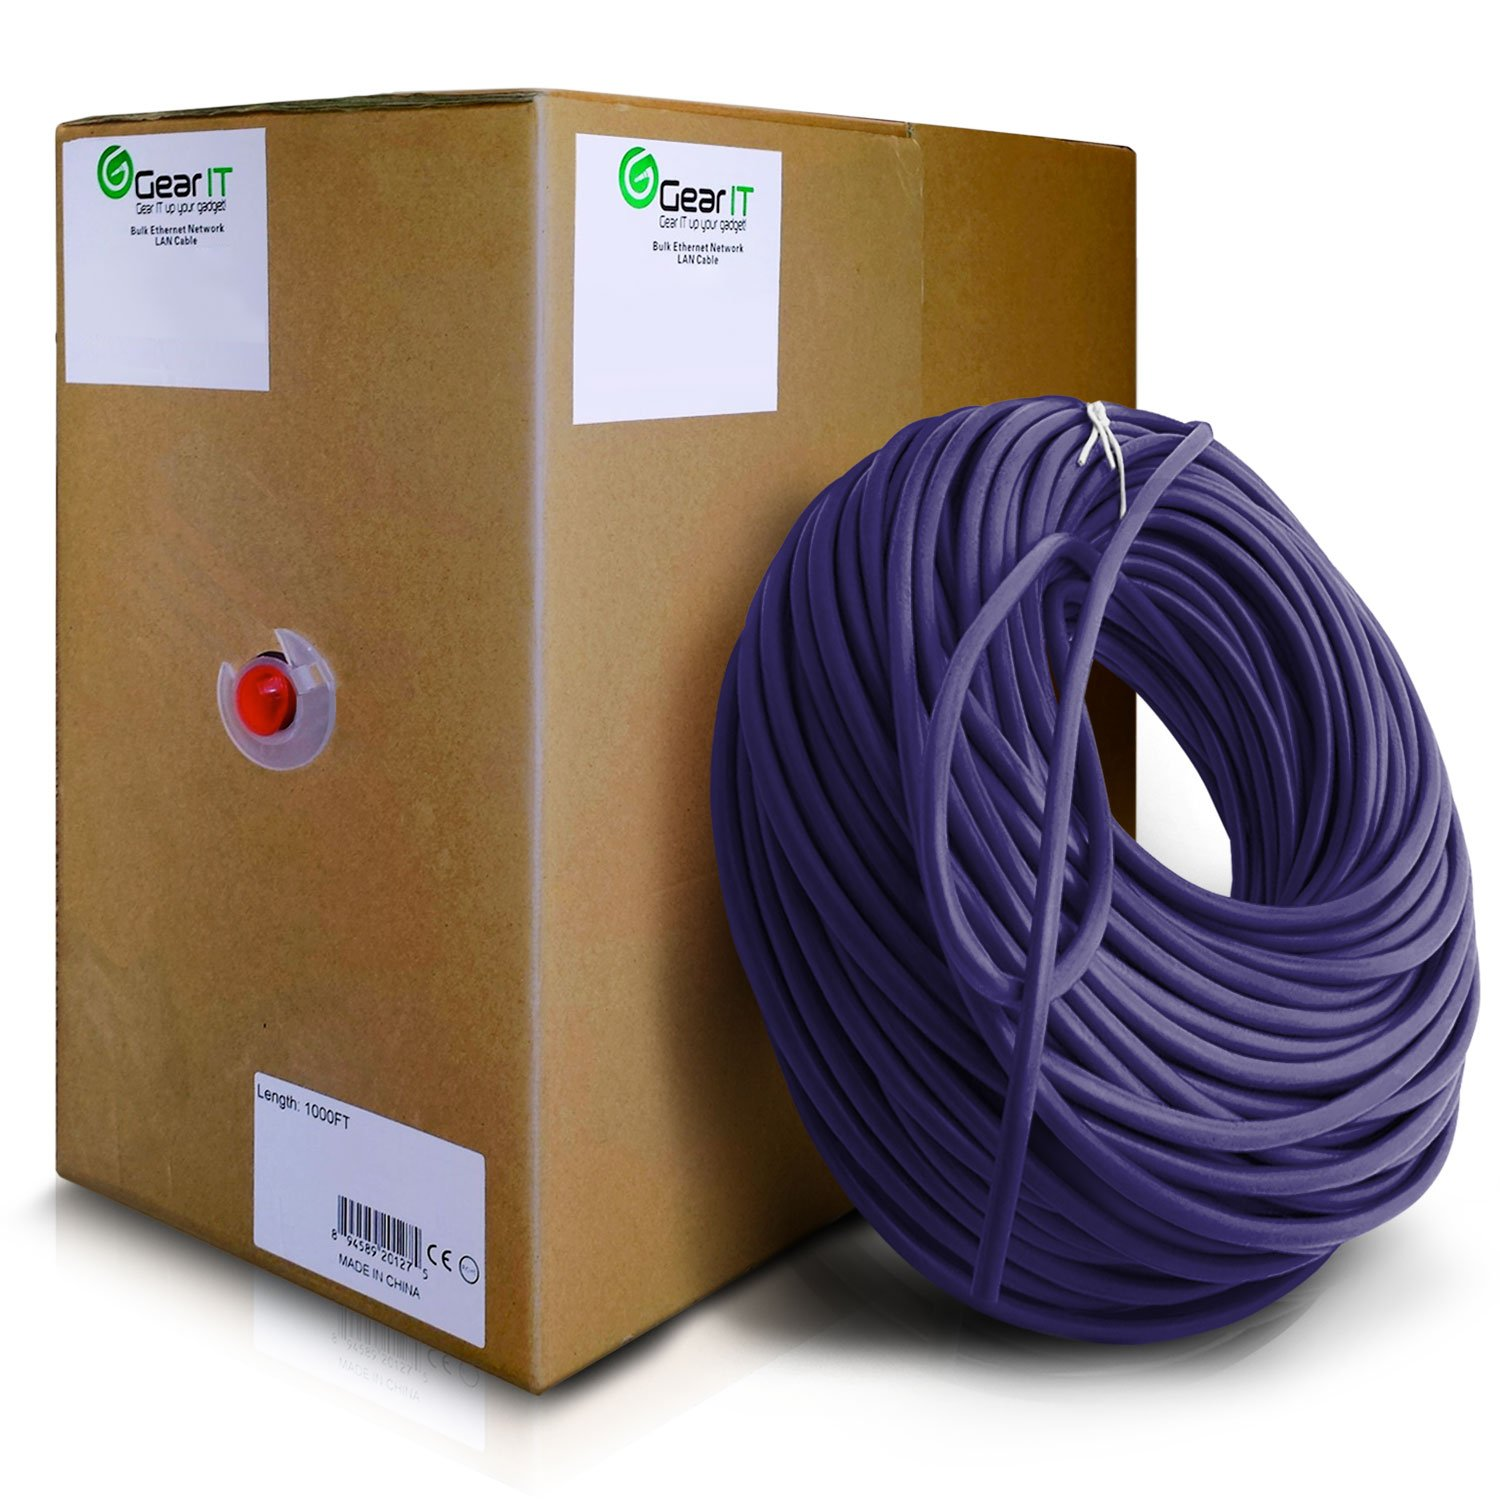 GearIT Cat5e Ethernet Cable Bulk 1000 Feet - Cat 5e 350Mhz 24AWG Full Copper Wire UTP Pull Box - In-Wall Rated (CM) Stranded Cat5e, Purple by GearIT